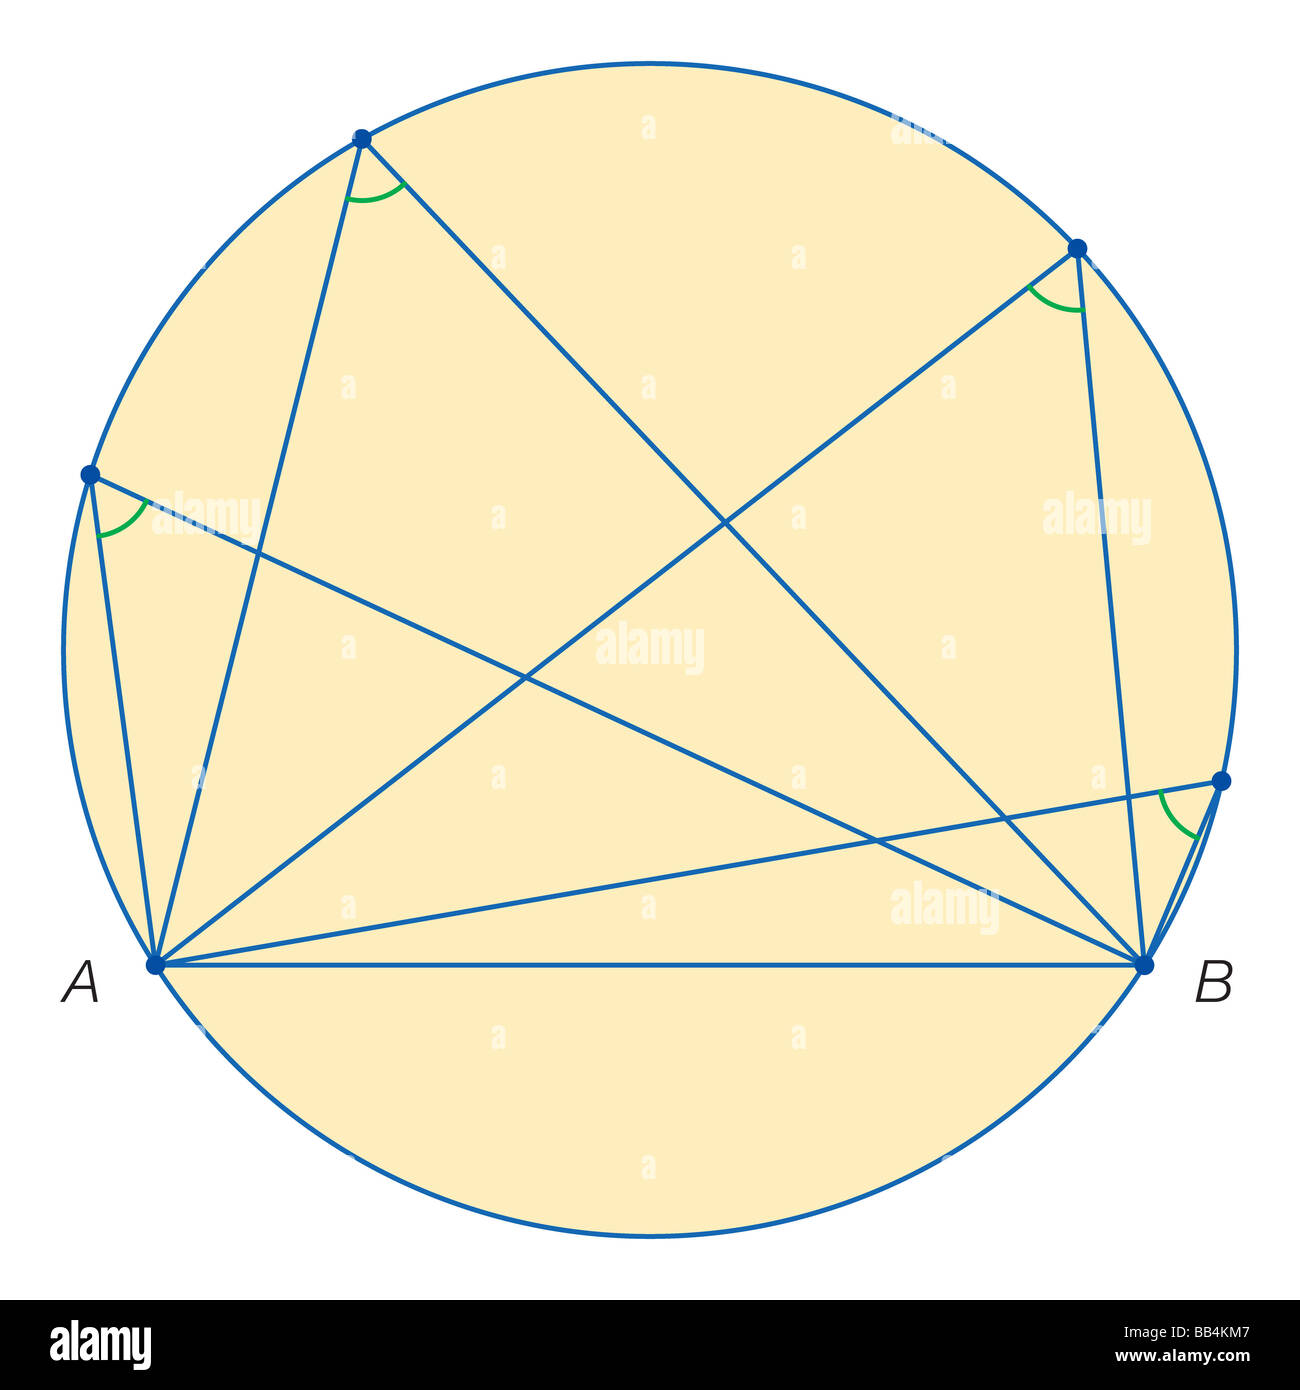 Thales of Miletus proof that for any chord AB in a circle, all of the angles subtended by points on the same semiarc - Stock Image